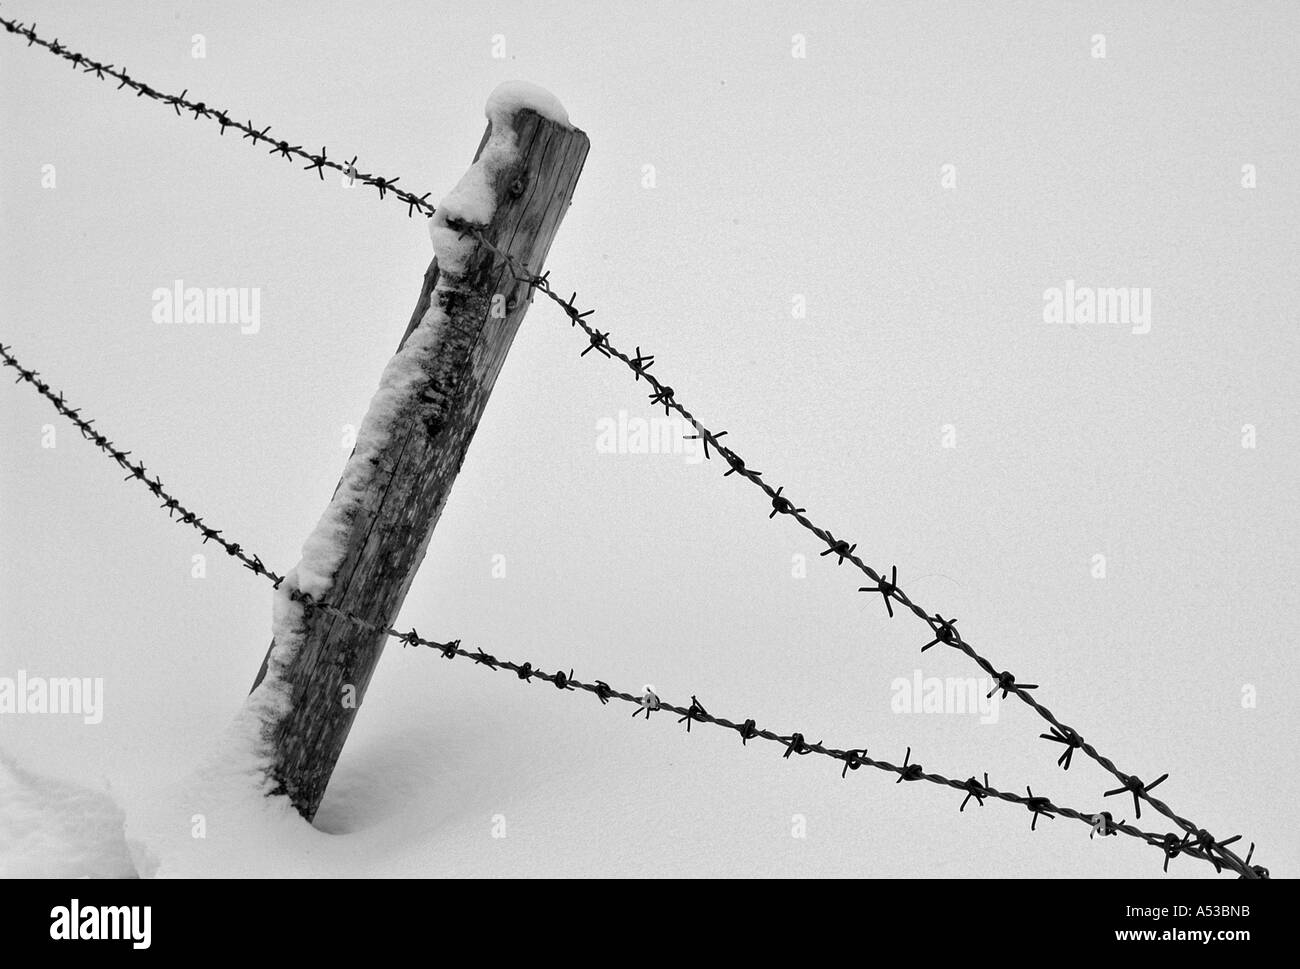 Barbed Wire Fence Black and White Stock Photos & Images - Alamy